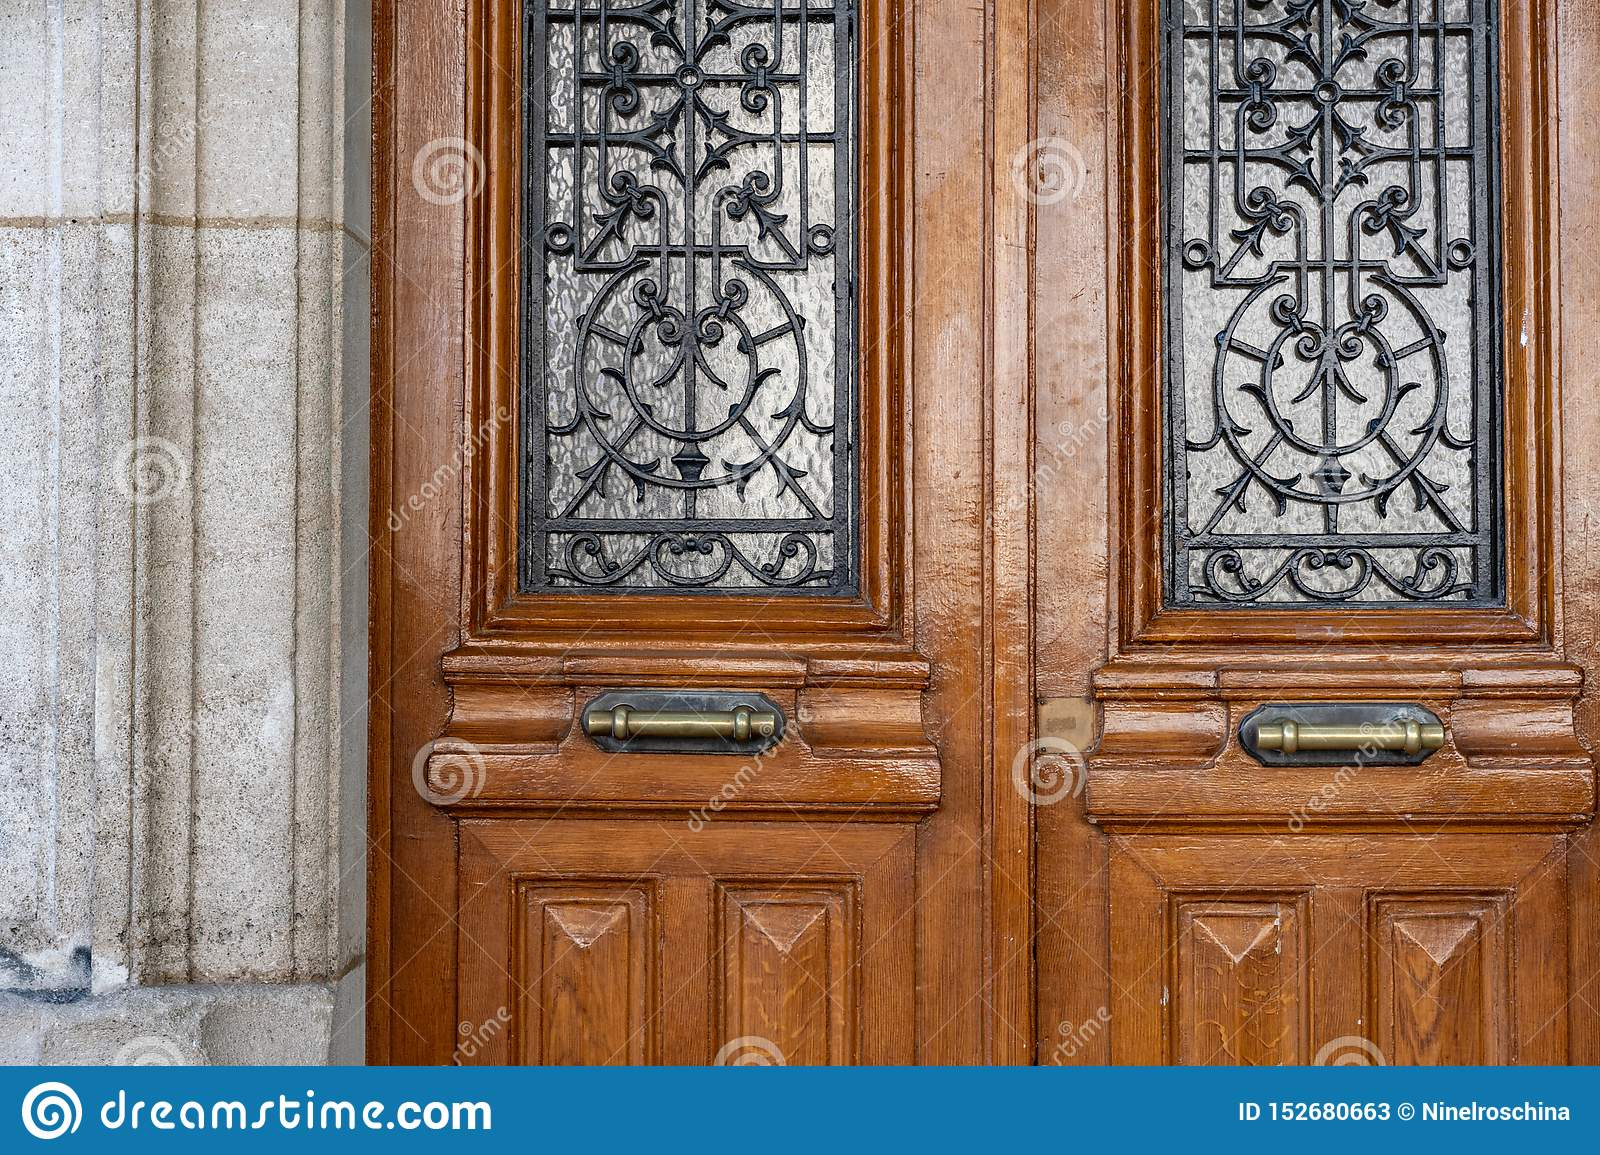 Vintage Wooden Door With Framed Door Panels And Antique Ornate Metal Lattices Antique Double Door Of Ancient Stone Building Stock Image Image Of Classic Blue 152680663